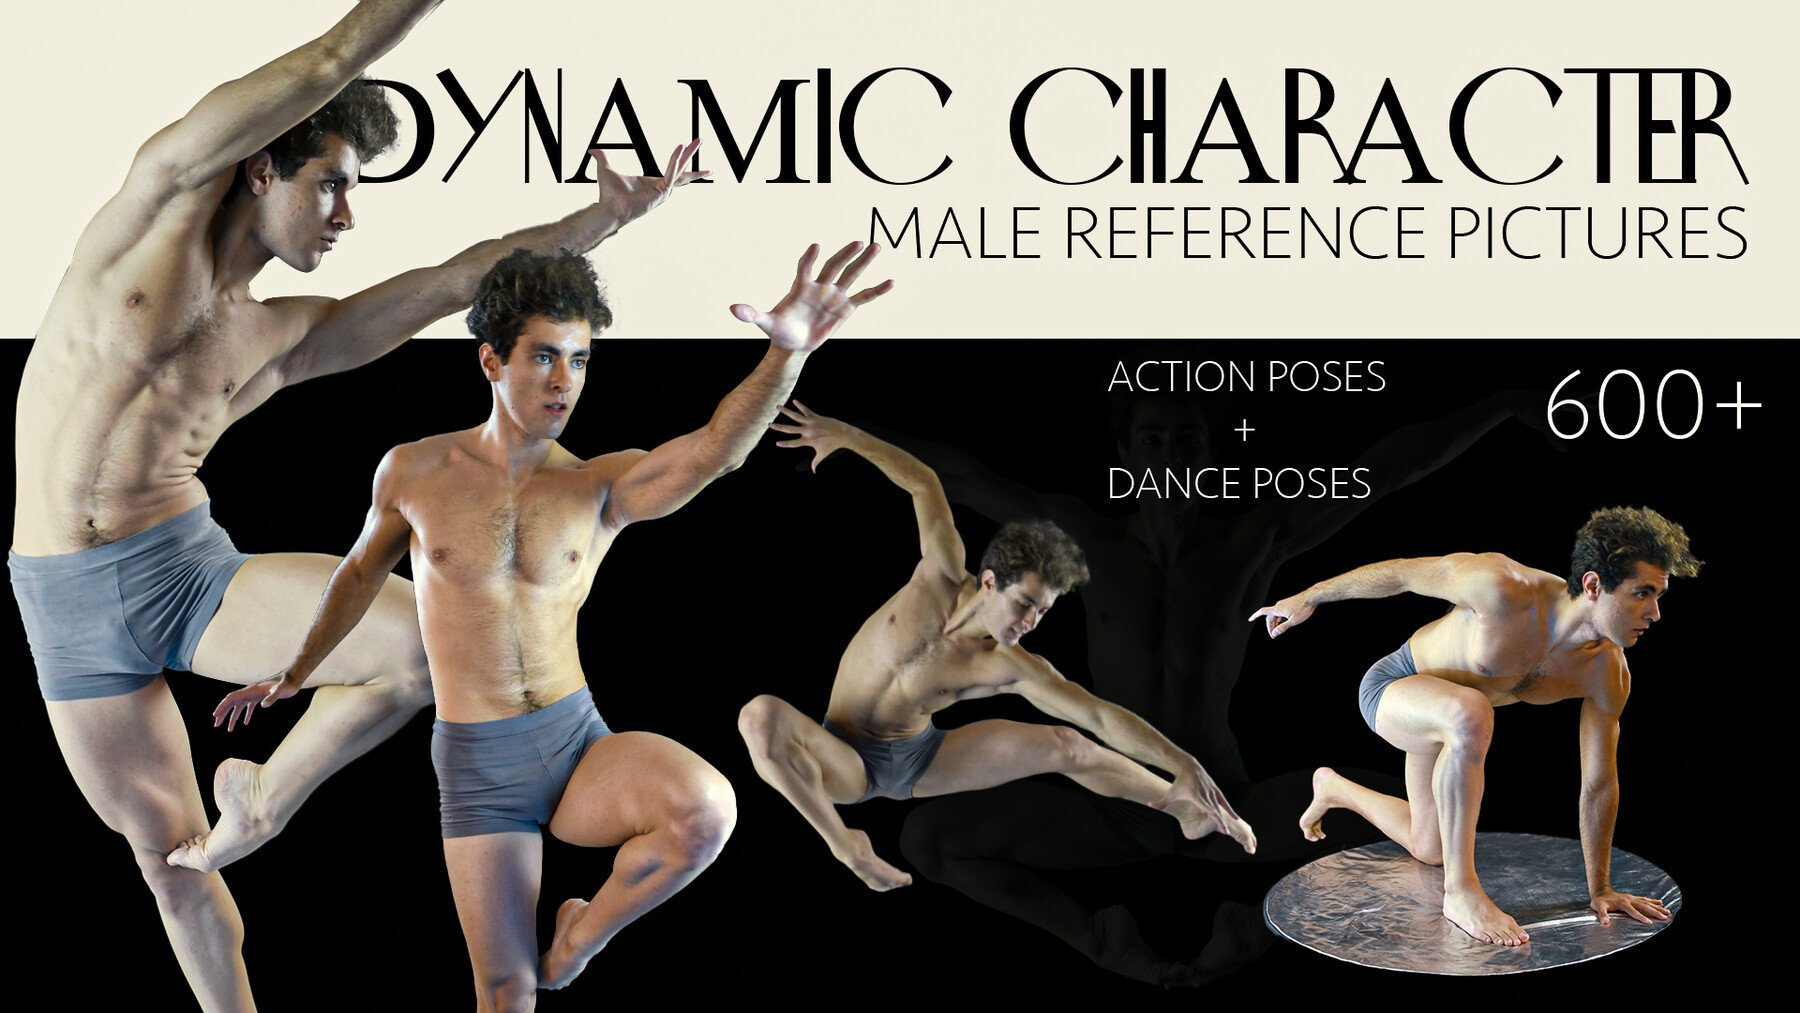 ArtStation - 600 + DYNAMIC CHARACTER MALE REFERENCE PICTURES [Action Poses + Dance Poses] | Resources